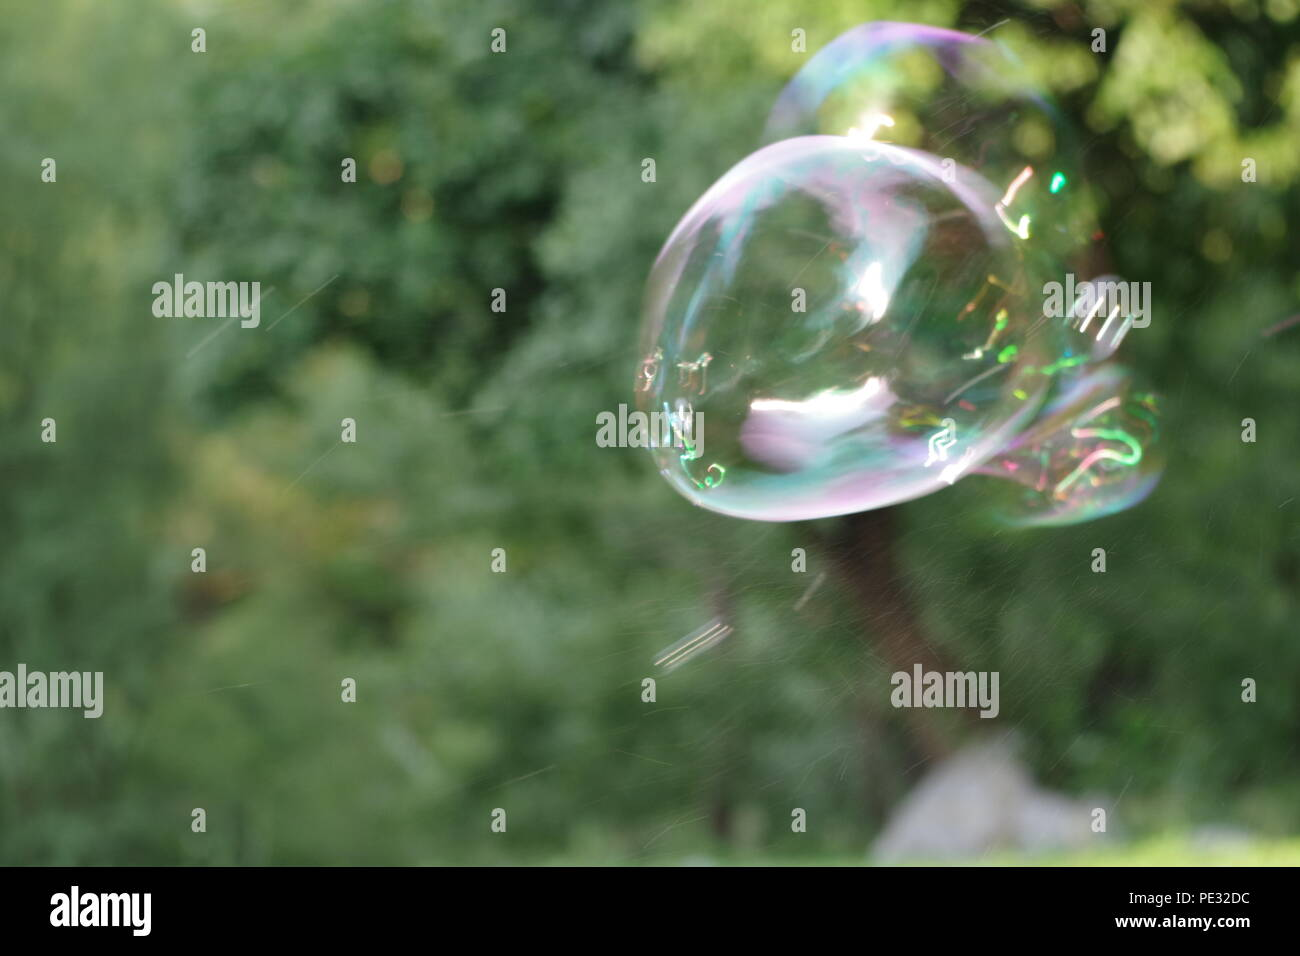 bursting bubble in the wind - Stock Image